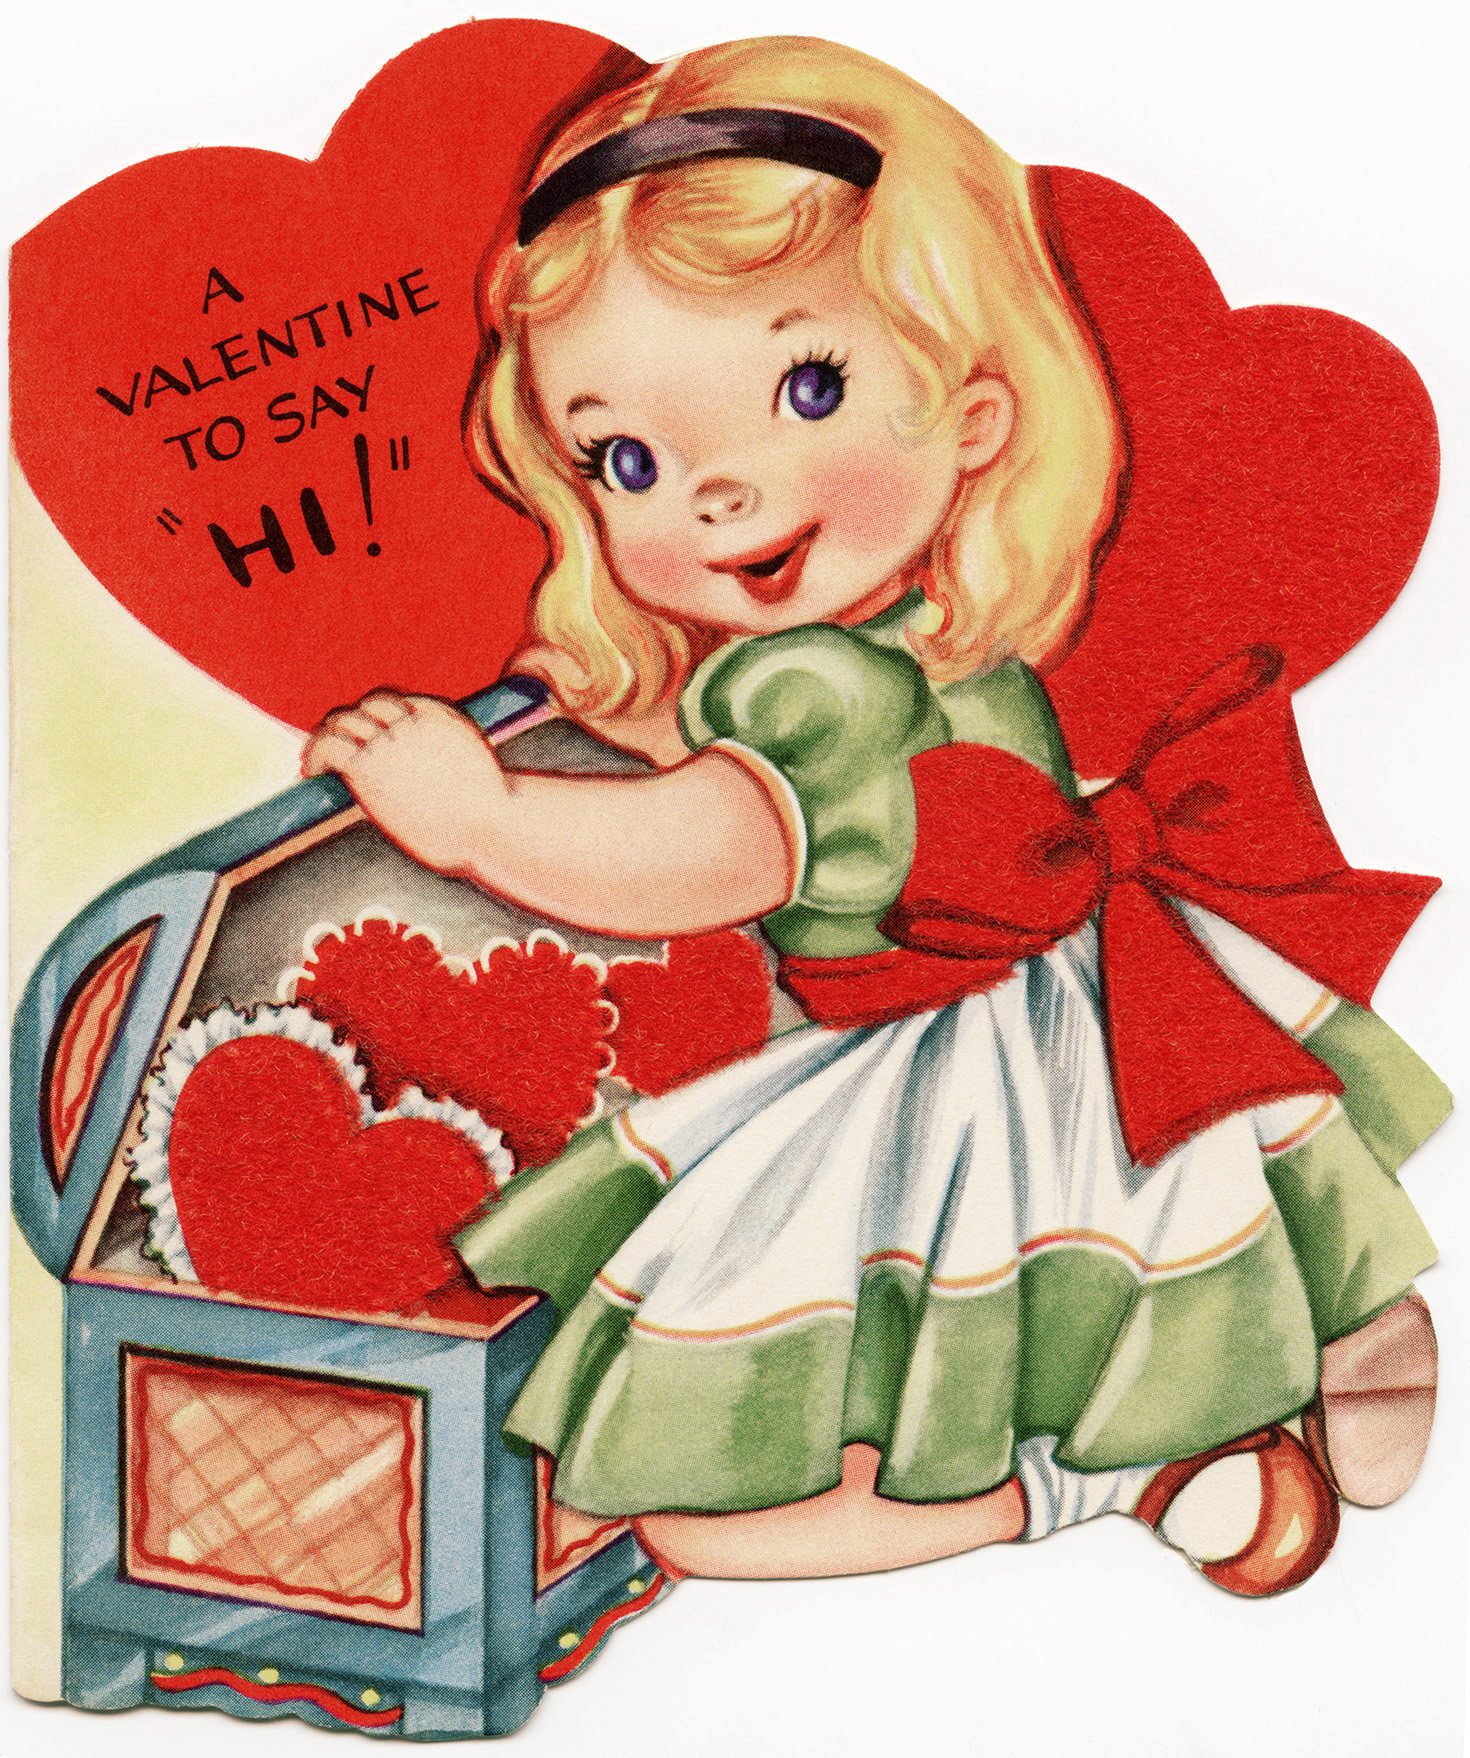 Free Vintage Image A Valentine To Say Hi  Old Design Shop Blog